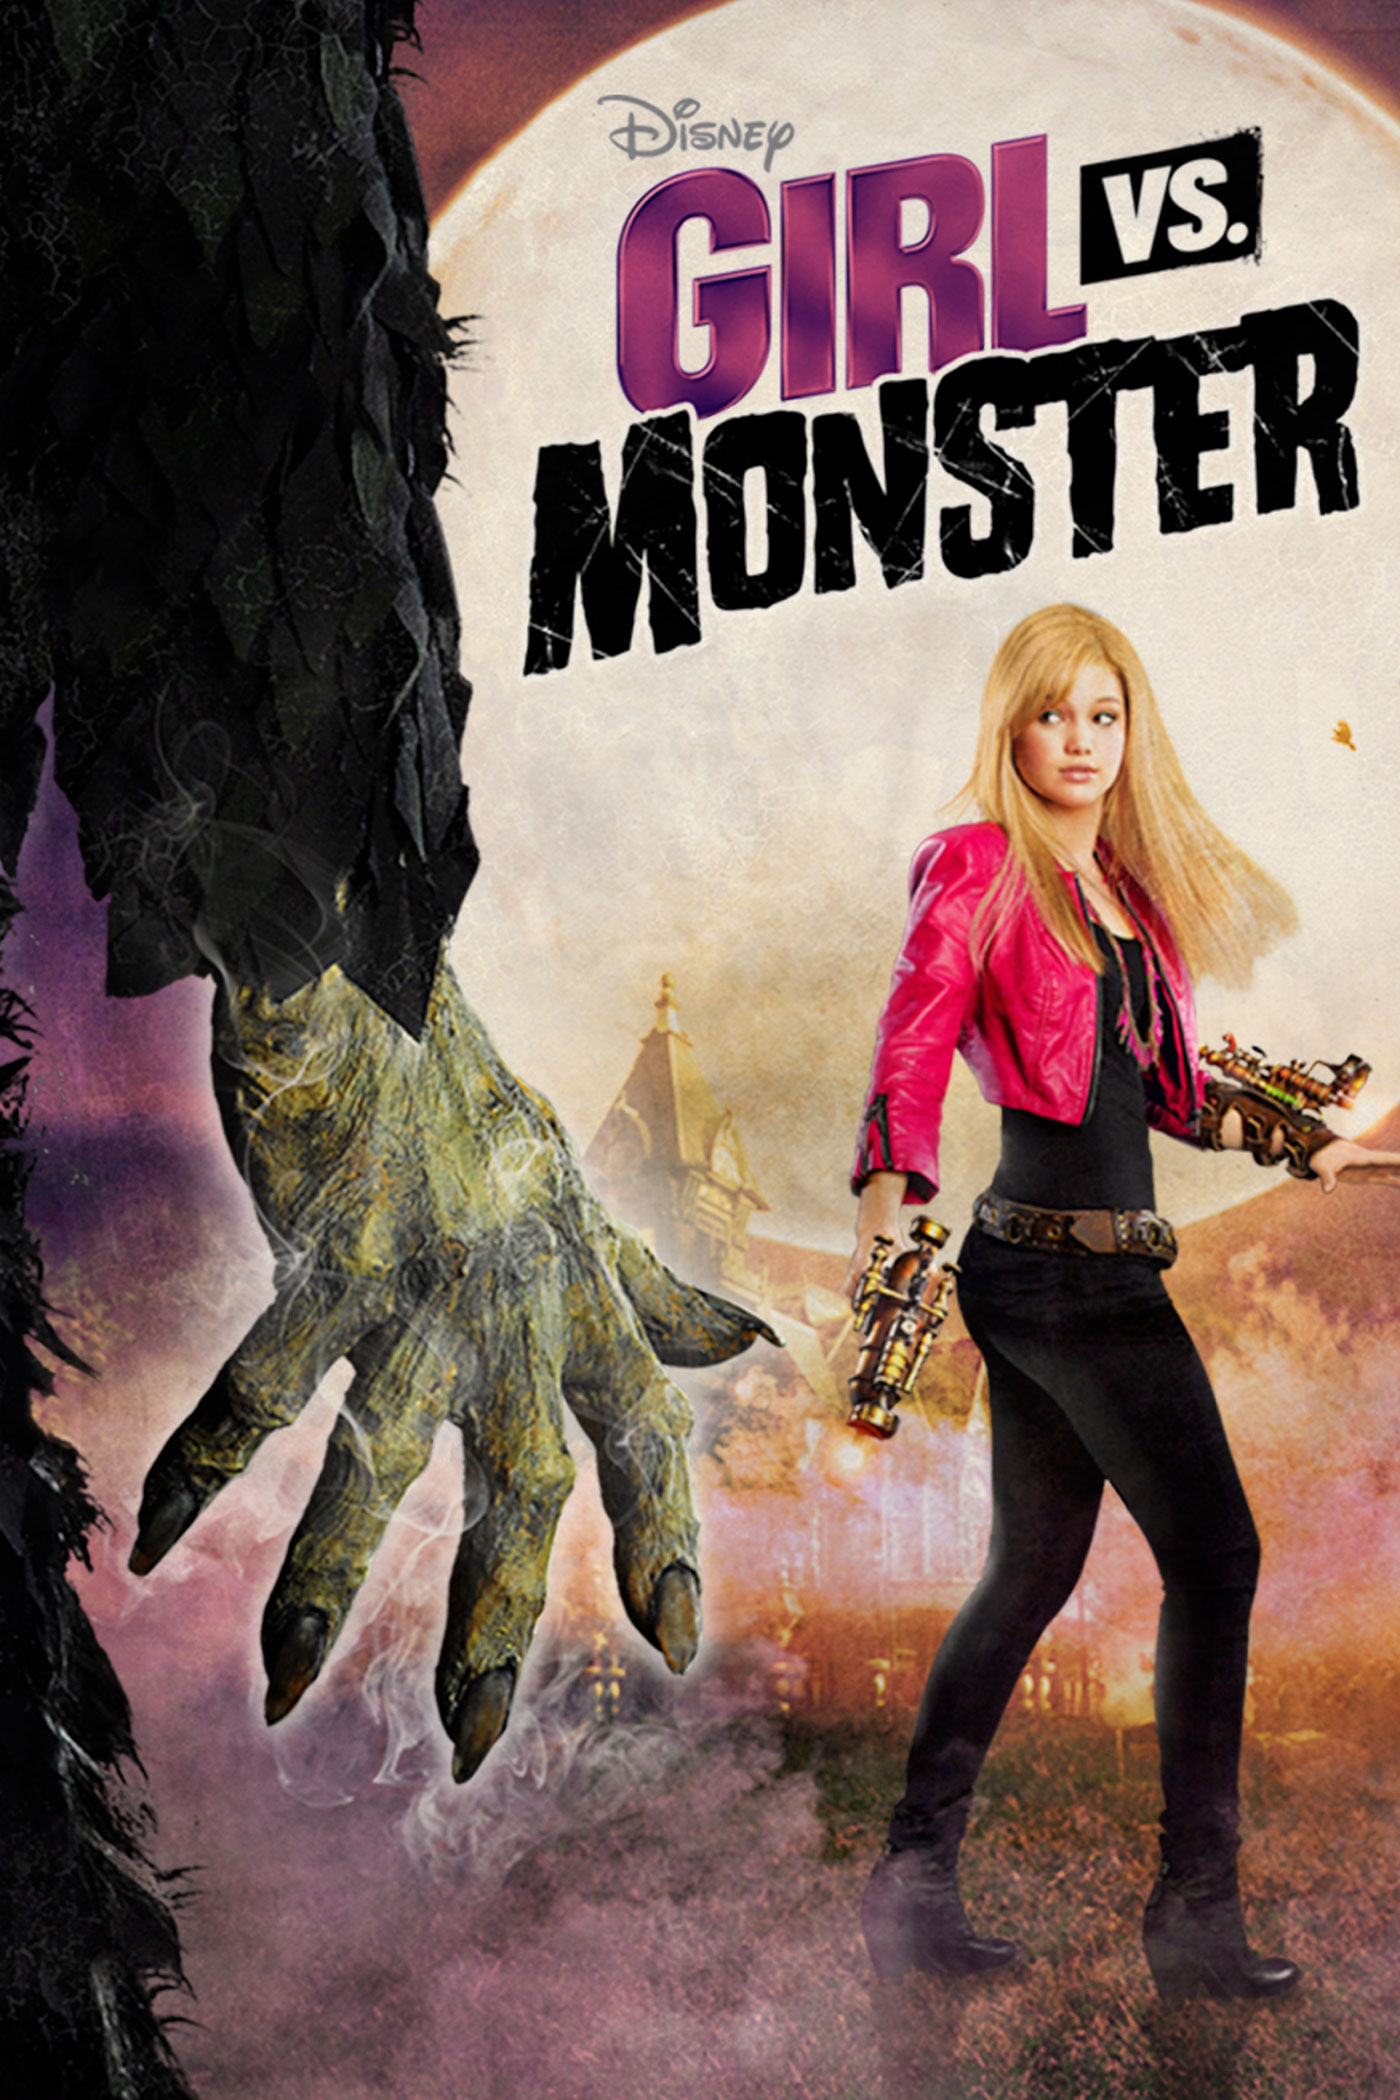 Girl Vs. Monster